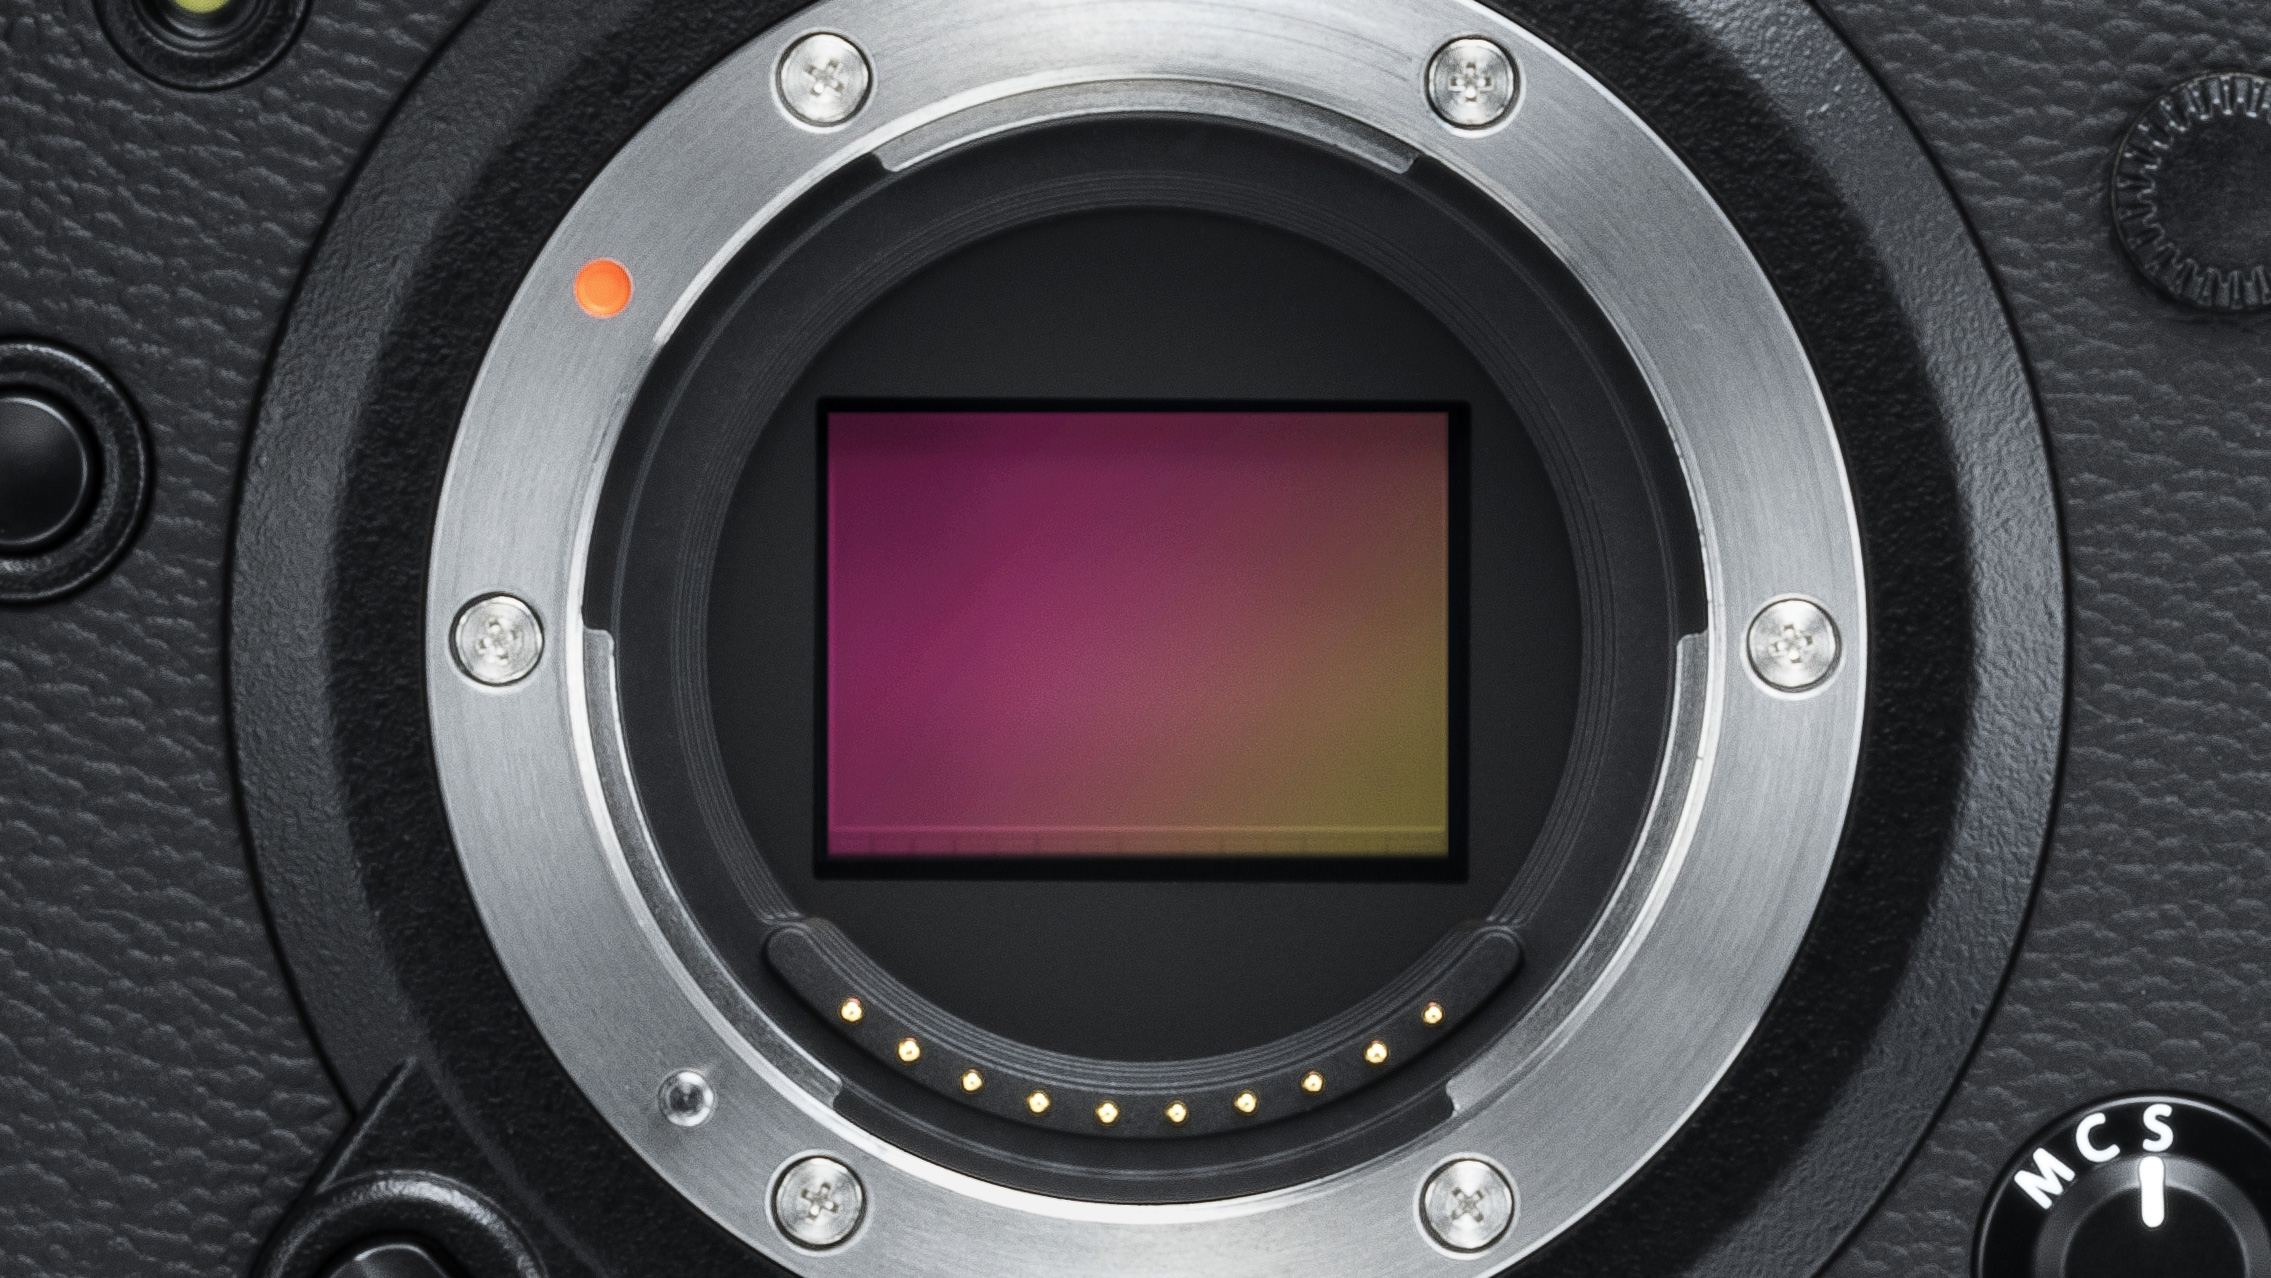 Is this the new Fujifilm camera? This is what the Fujifilm X-H2 could look like | Digital Camera World